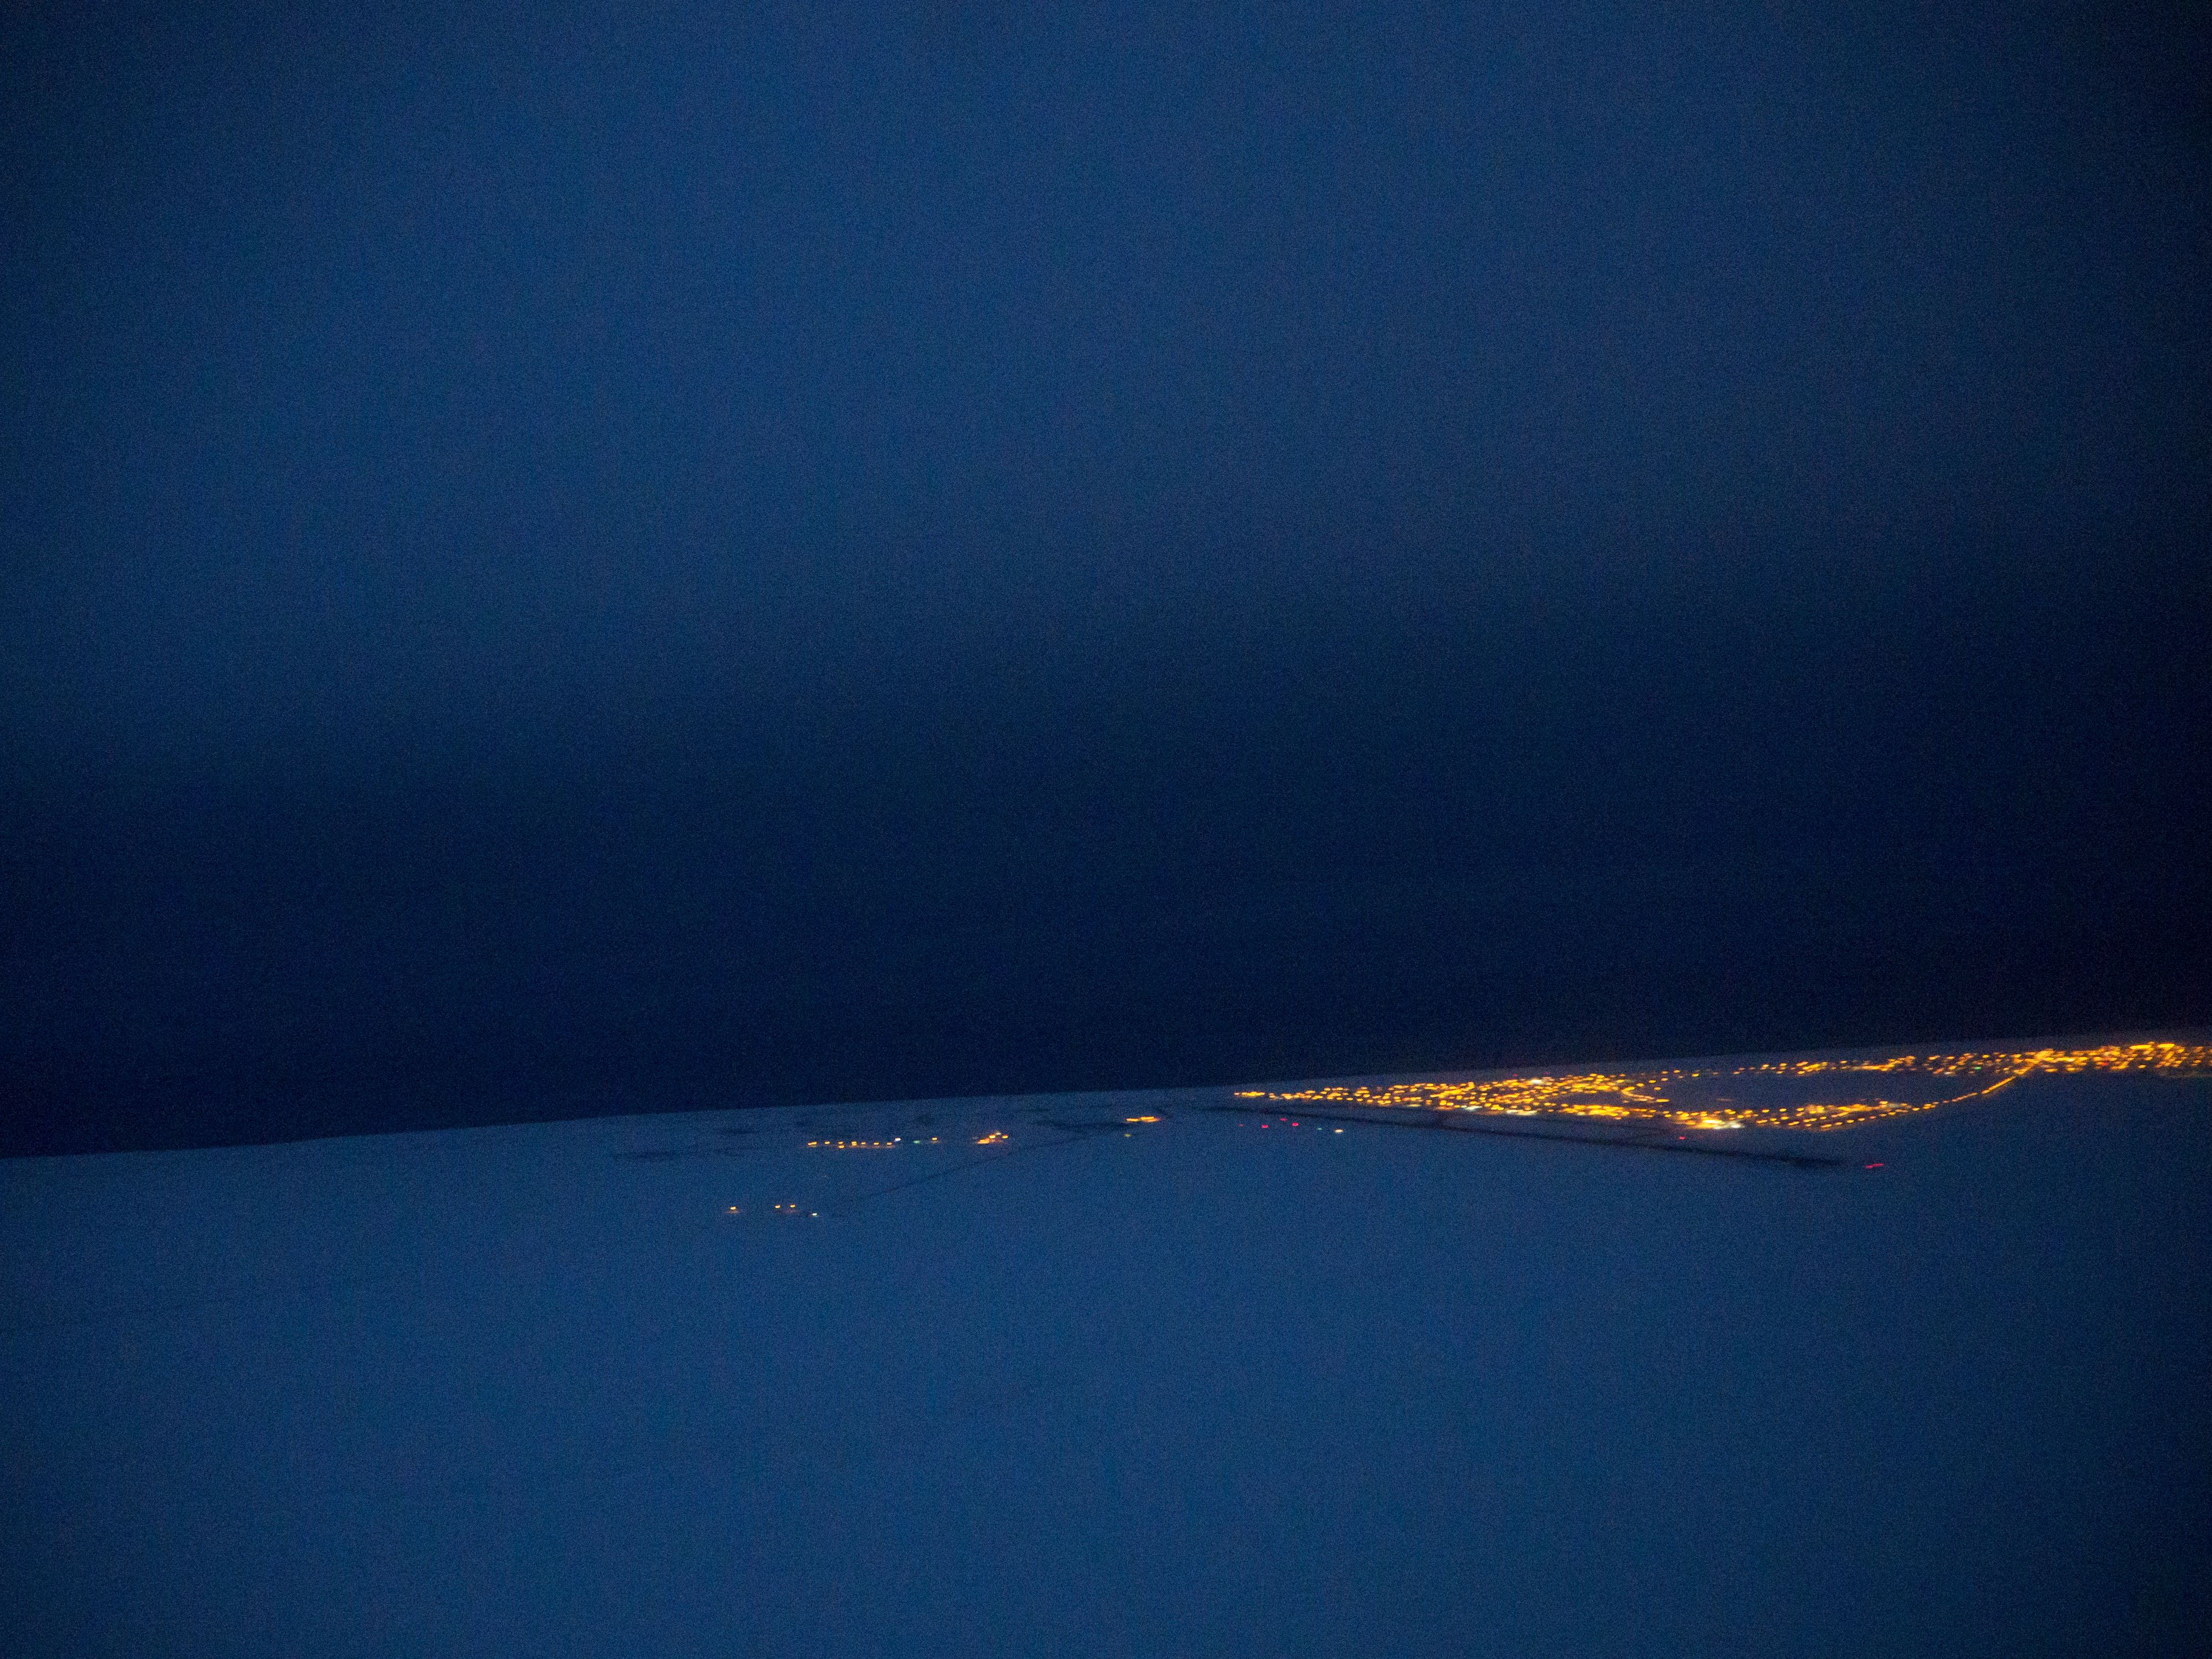 Lights of Utqiagvik are visible from a midday flight out of town. When someone is lost or stranded in the wild lands within 25 miles of Utqiagvik, volunteers from Barrow Search and Rescue often take they lead in retrieving them. The group also has helped map camps and cabins in the region, stake trails between village and provide emergency beacons for travelers. Photographed on Thursday, December 15, 2016. (Marc Lester / Alaska Dispatch News)